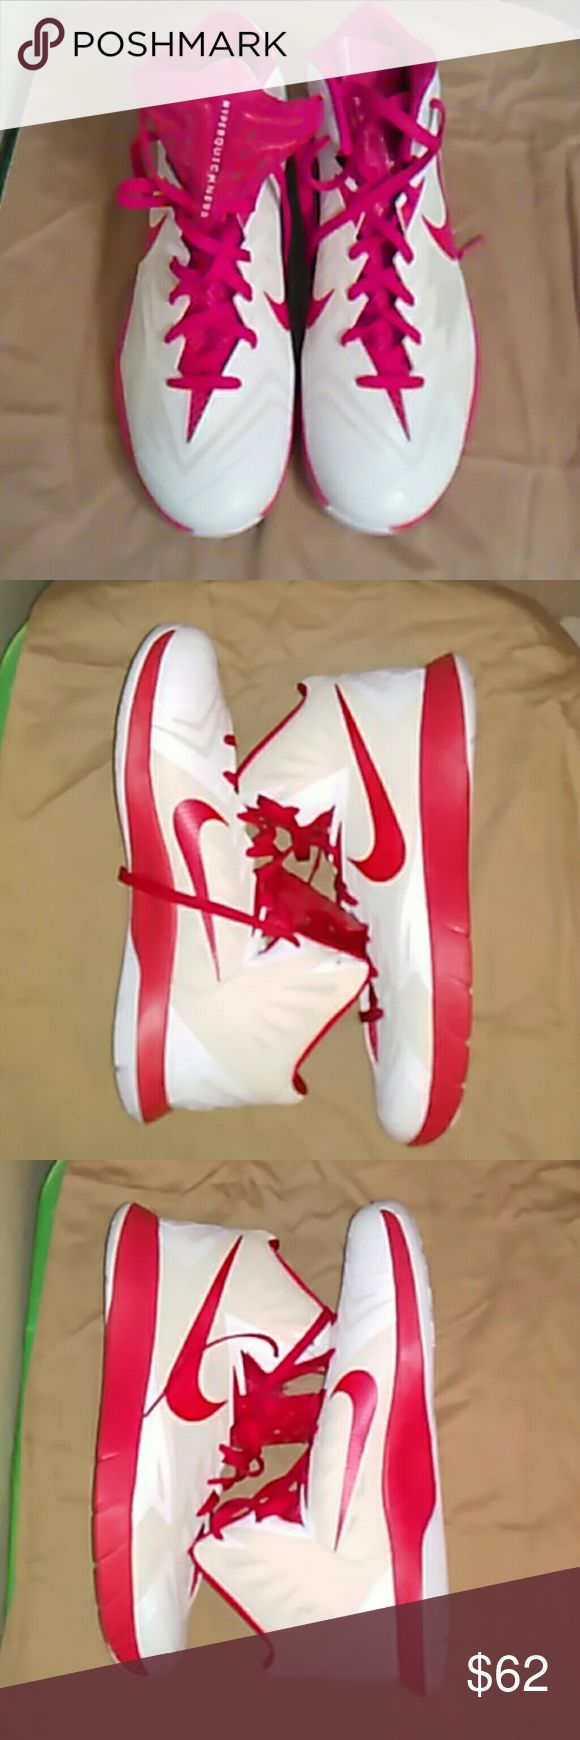 NWOT-Mens Nike Basketball Shoes NWOT- NO BOX. SIZE 15. Made by Nike. White & red with red laces. 2014 Zoom Hyperquickness TB High top basketball shoes. Material is rubber & breathable mesh. Bundle for better discount. Nike Shoes